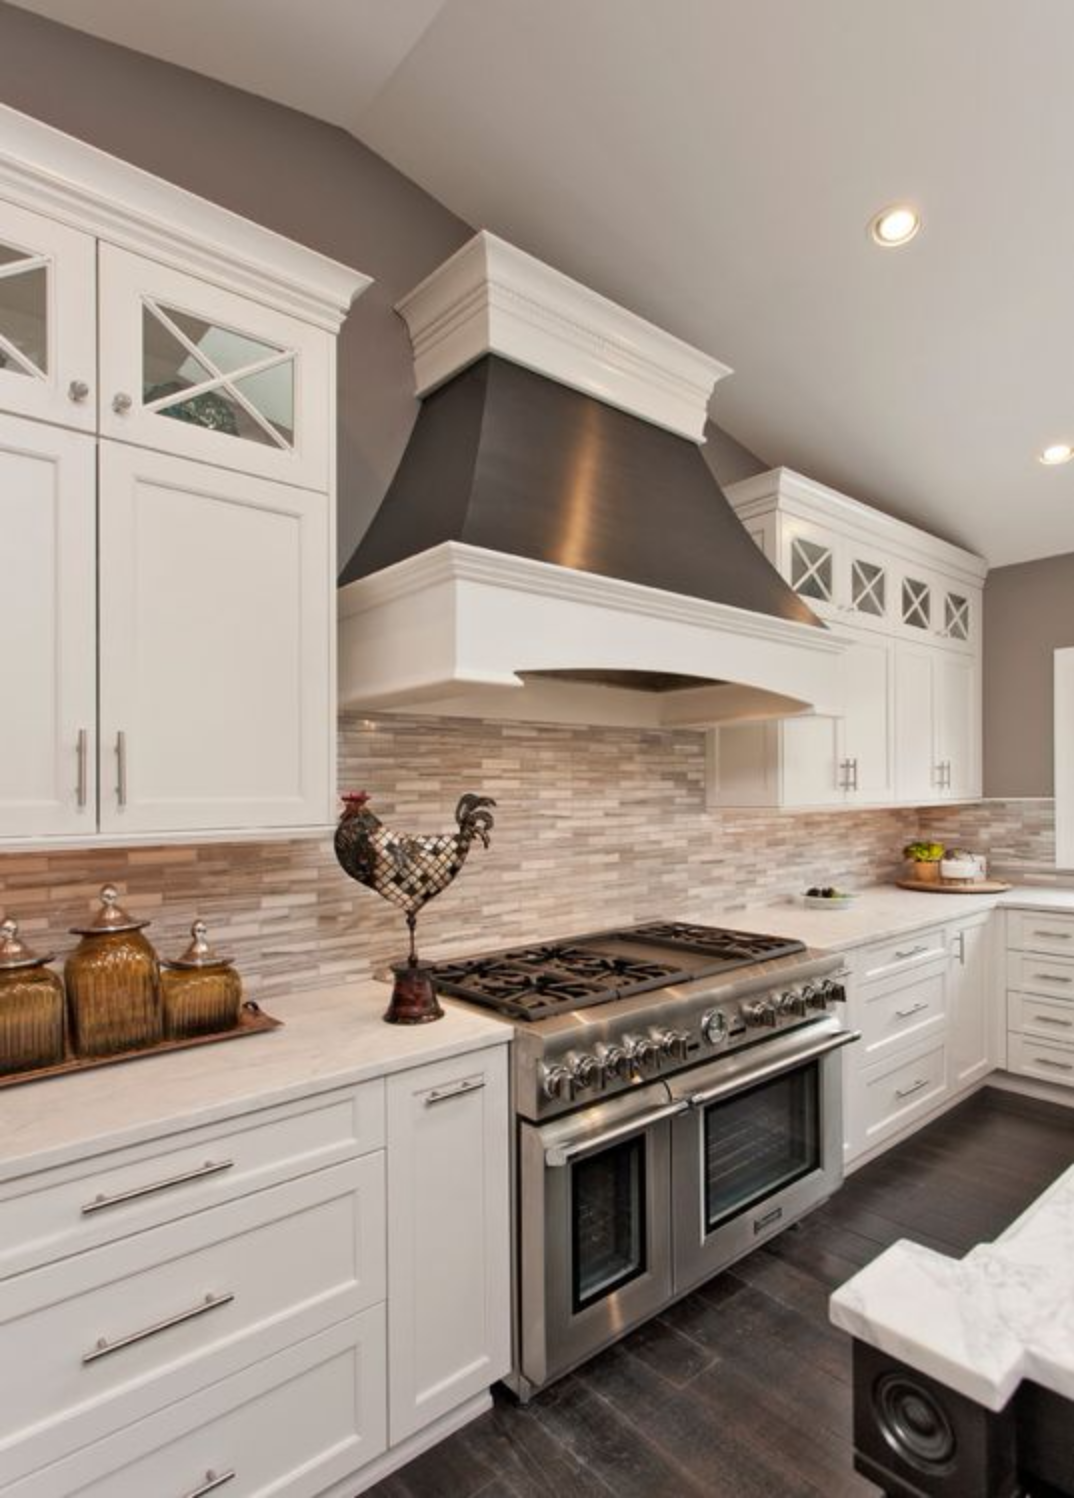 5 innovative kitchen remodel ideas | You ve, Advice and Kitchens